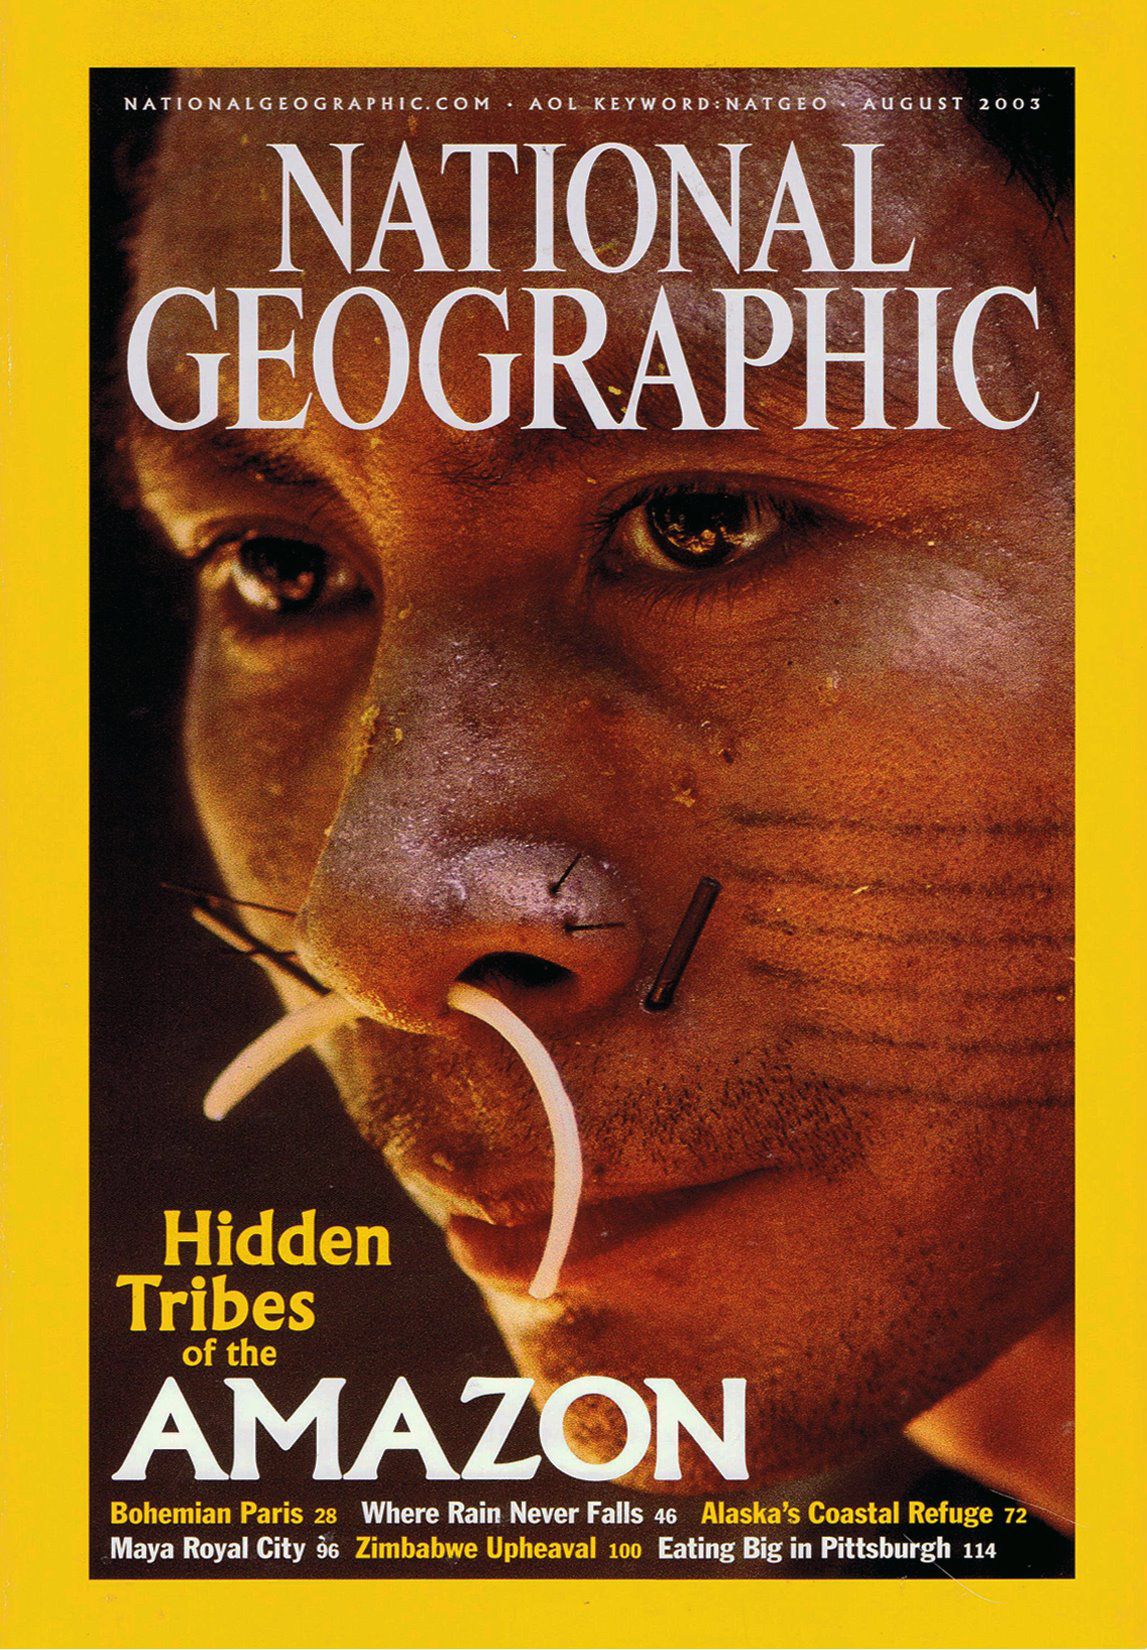 National Geographic Cover - Hidden Tribes of the Amazon